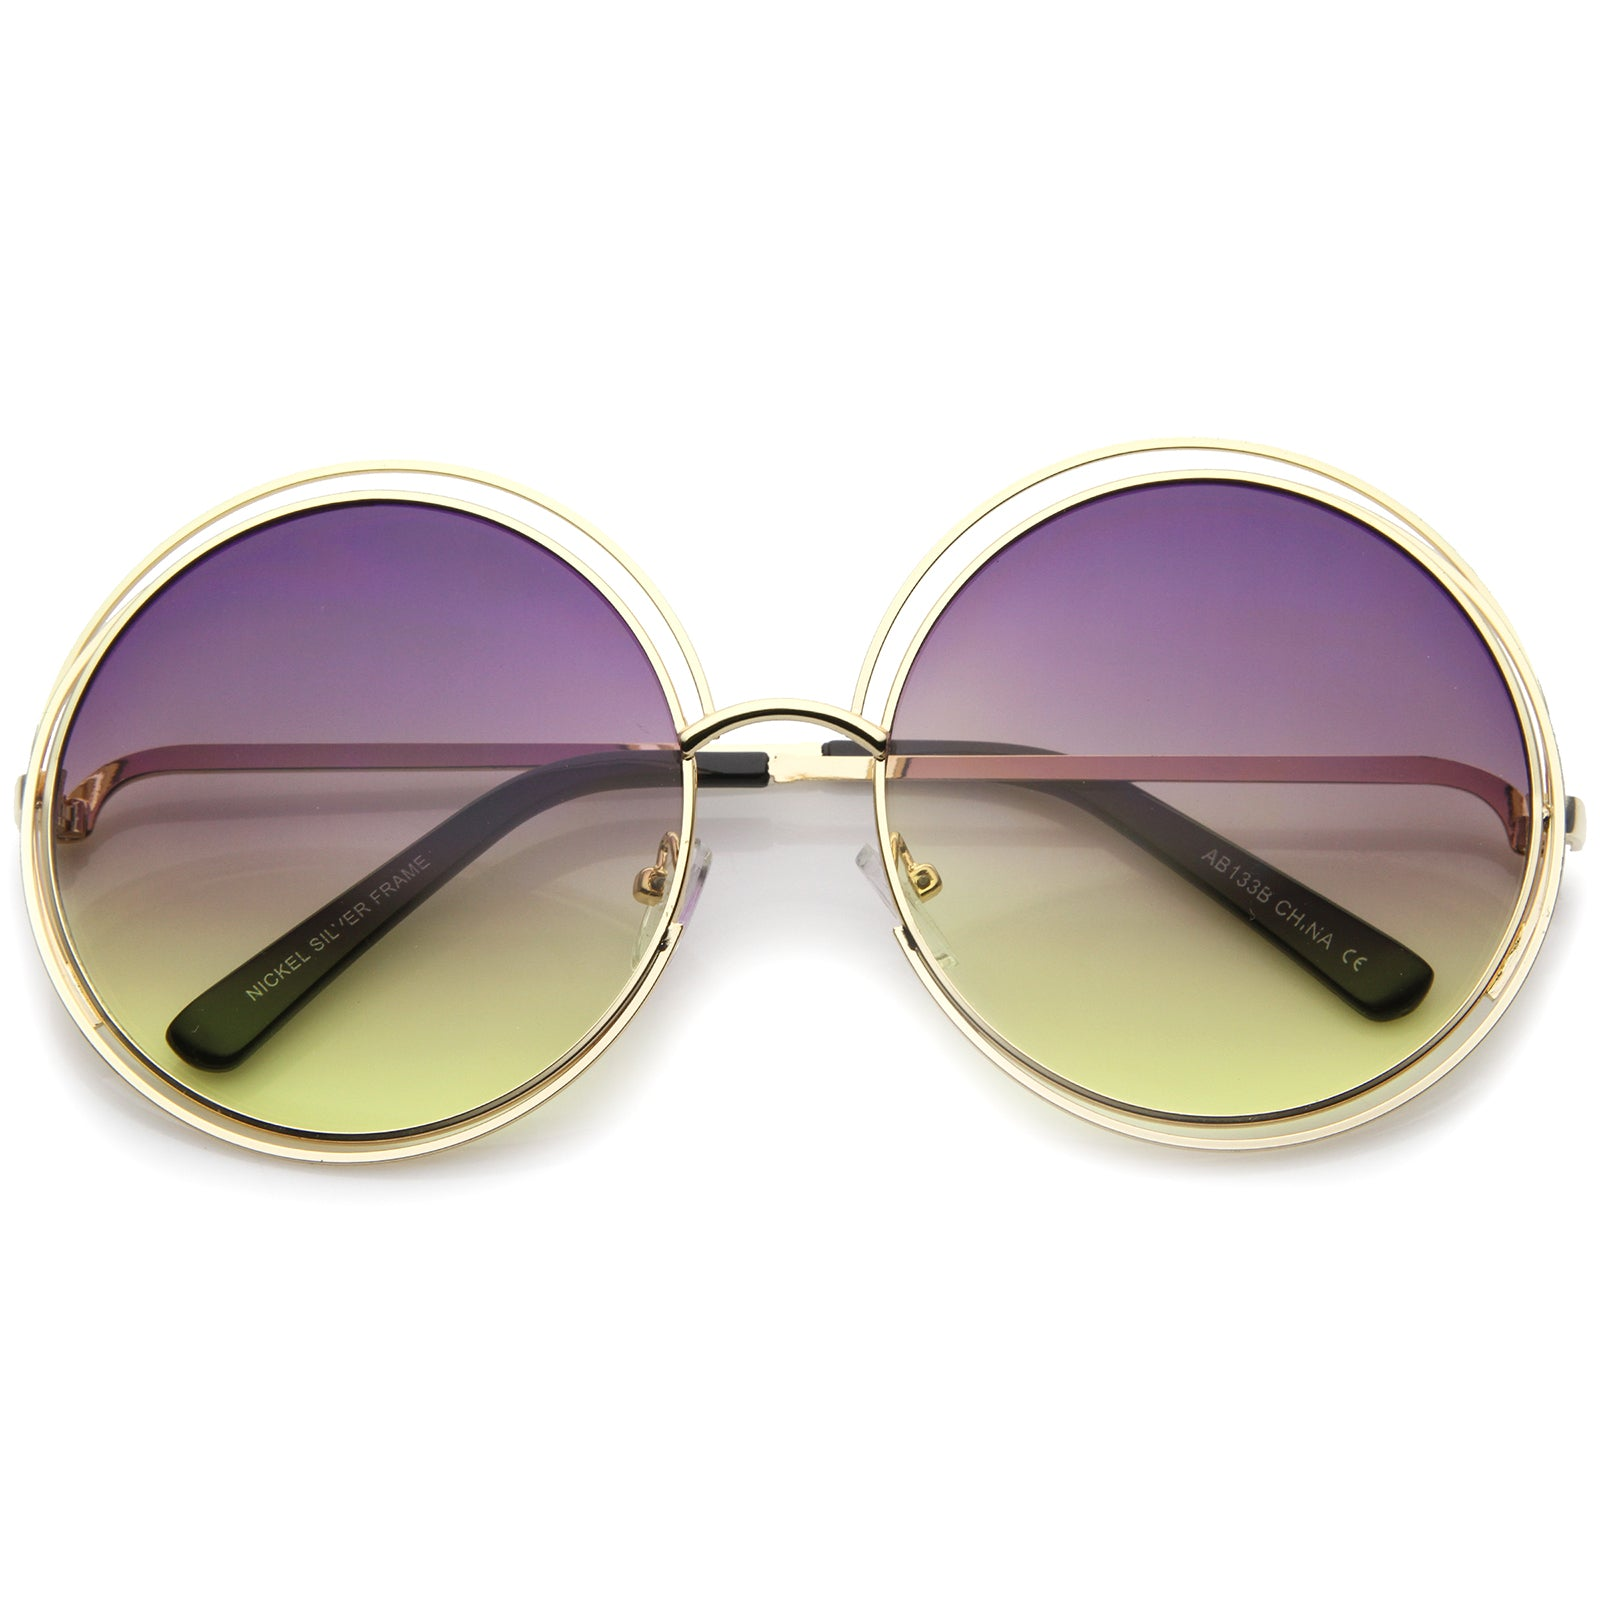 Oversize Wire Frame Gradient Two-Tone Color Lens Round Sunglasses 61mm - sunglass.la - 9